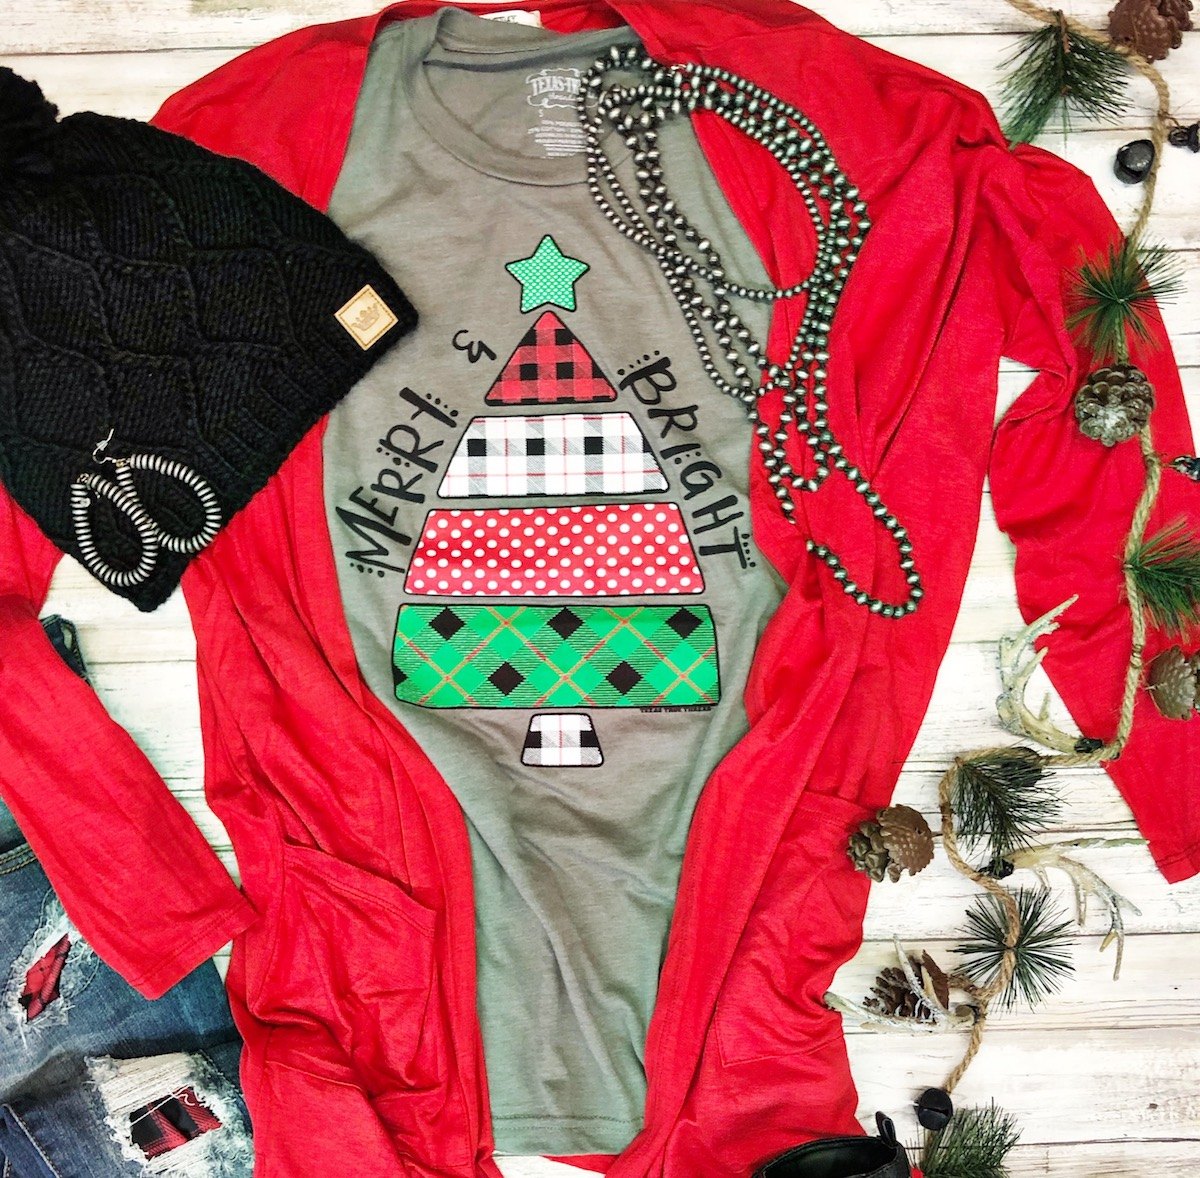 Christmas Graphic Tee and Cardigan by Texas True Threads at Horse Creek Boutique